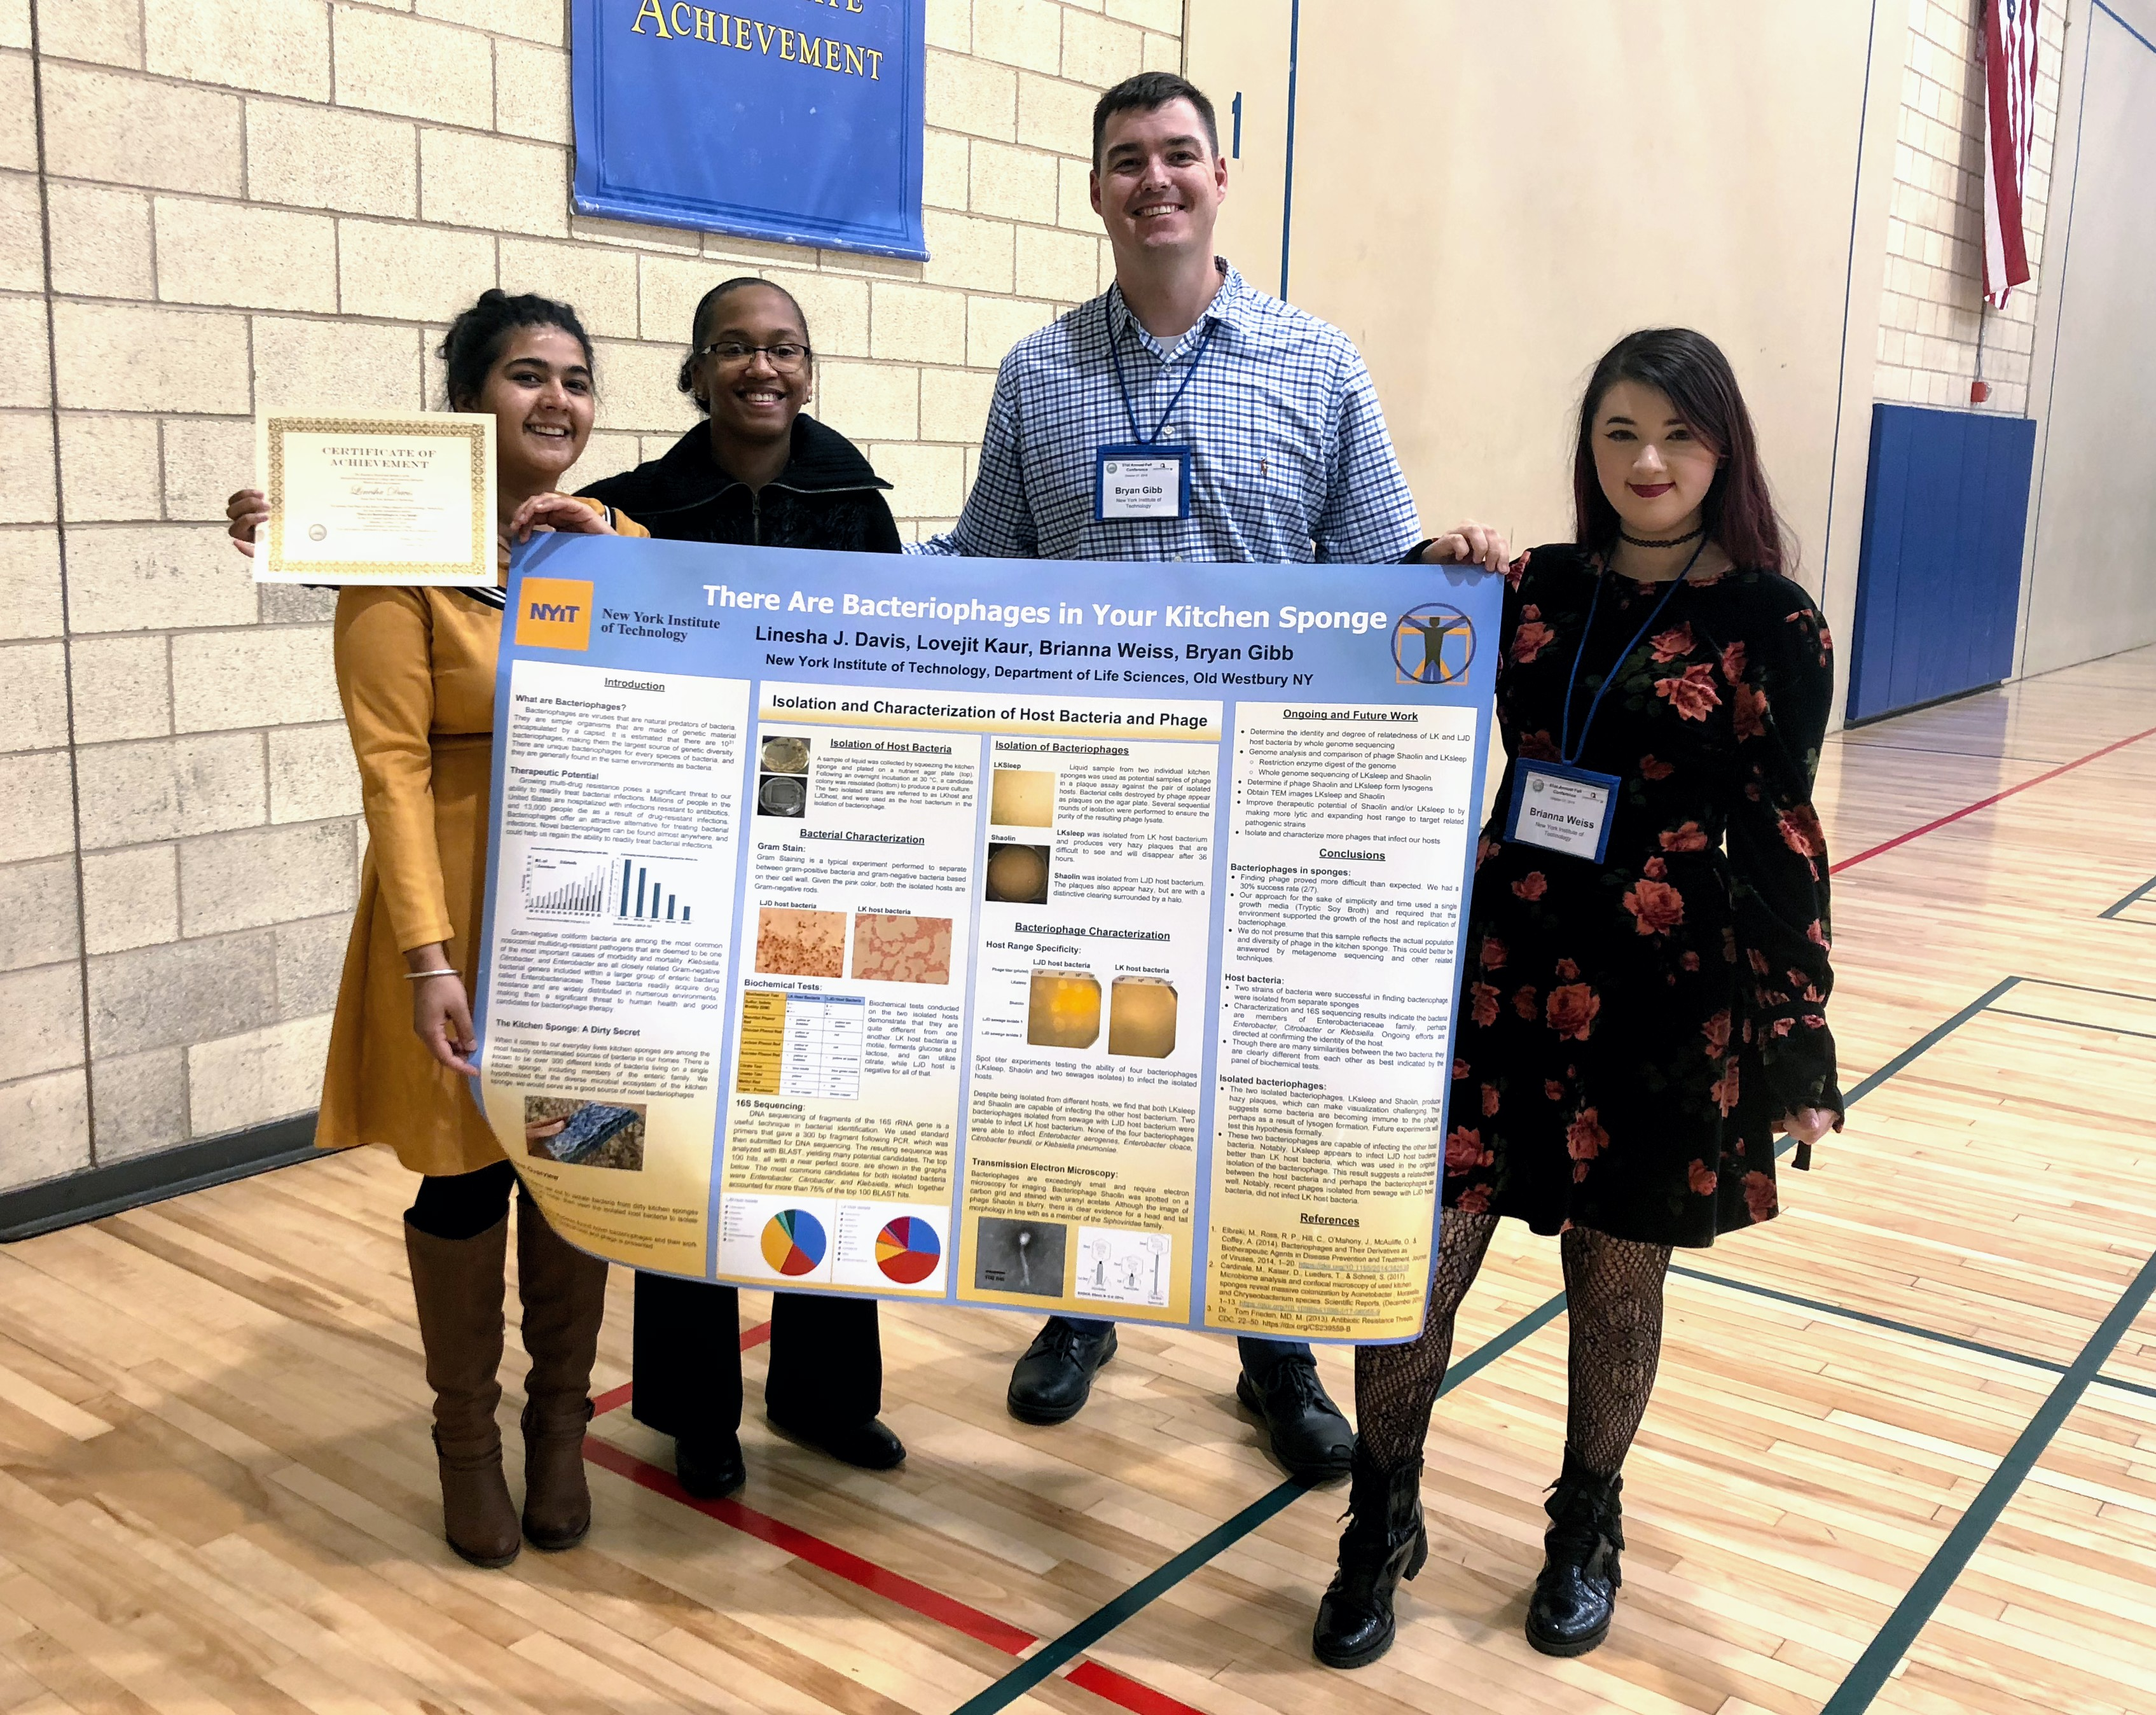 Life Science students, Lovejit Kaur, Linesha Davis and Brianna Weiss with mentor Bryan Gibb, which took first place for their work on bacteriophages in kitchen sponges.